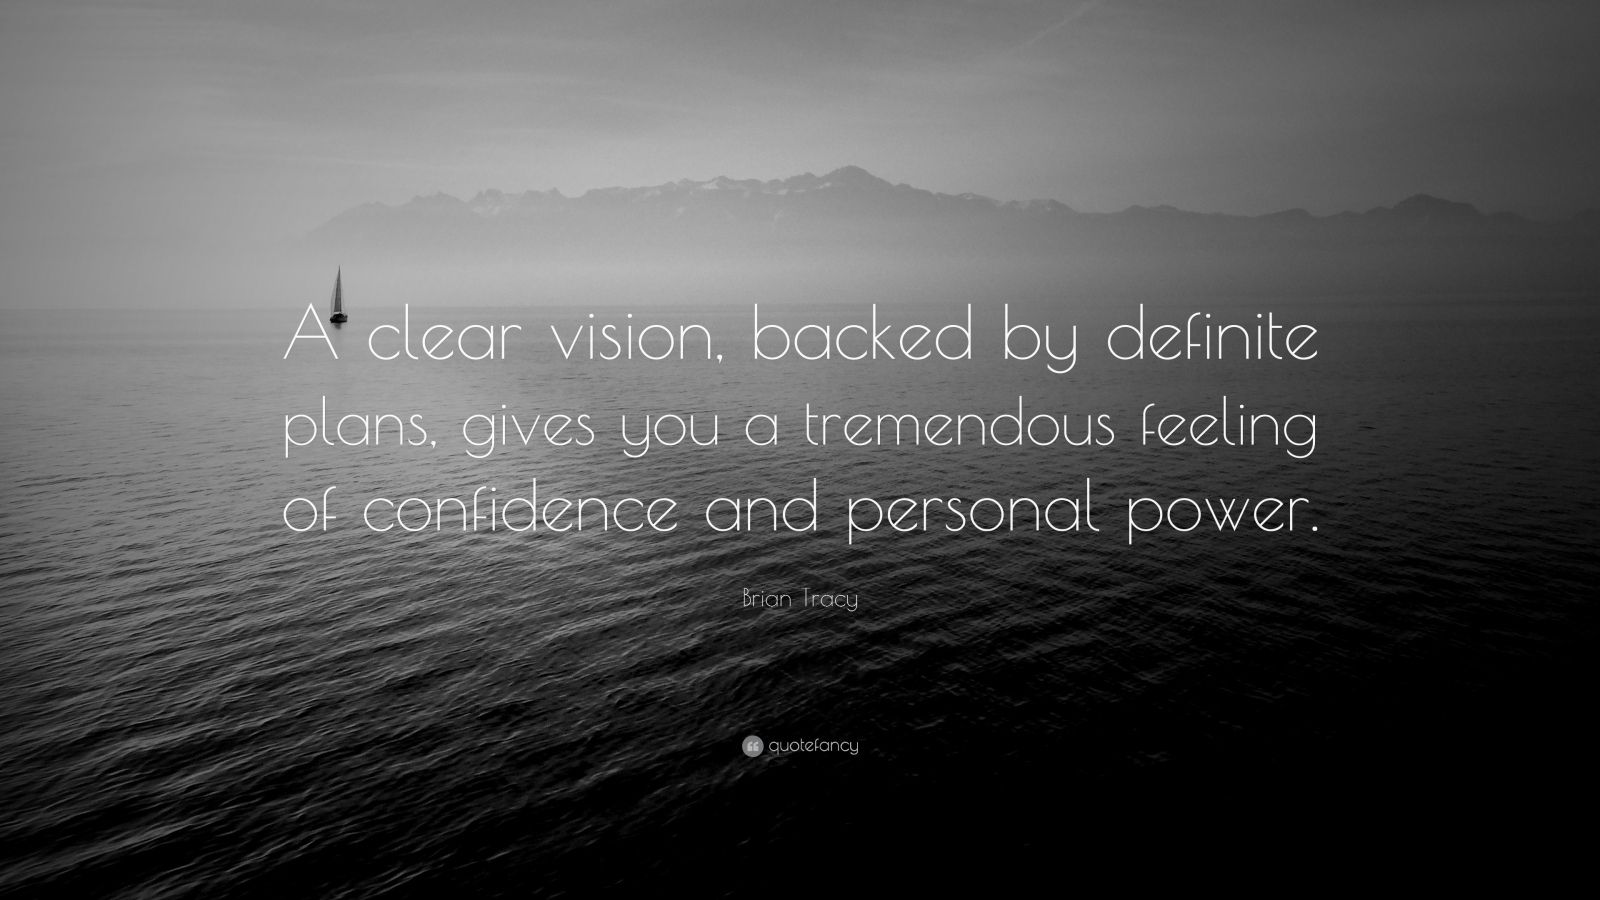 brian tracy quote   u201ca clear vision  backed by definite